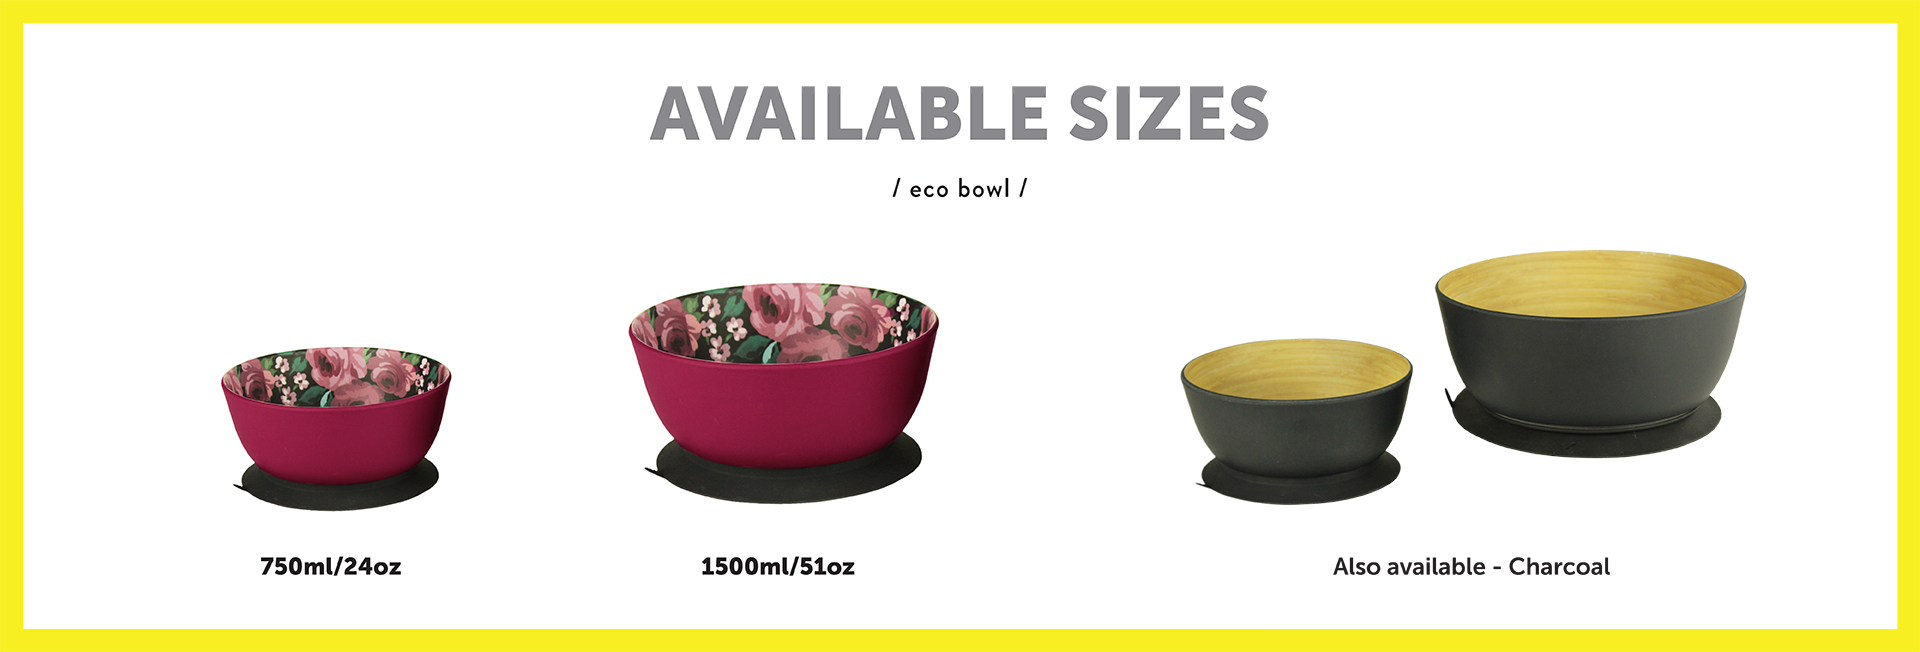 dimensions-eco-bowl-dark-floral-for-dogs-english